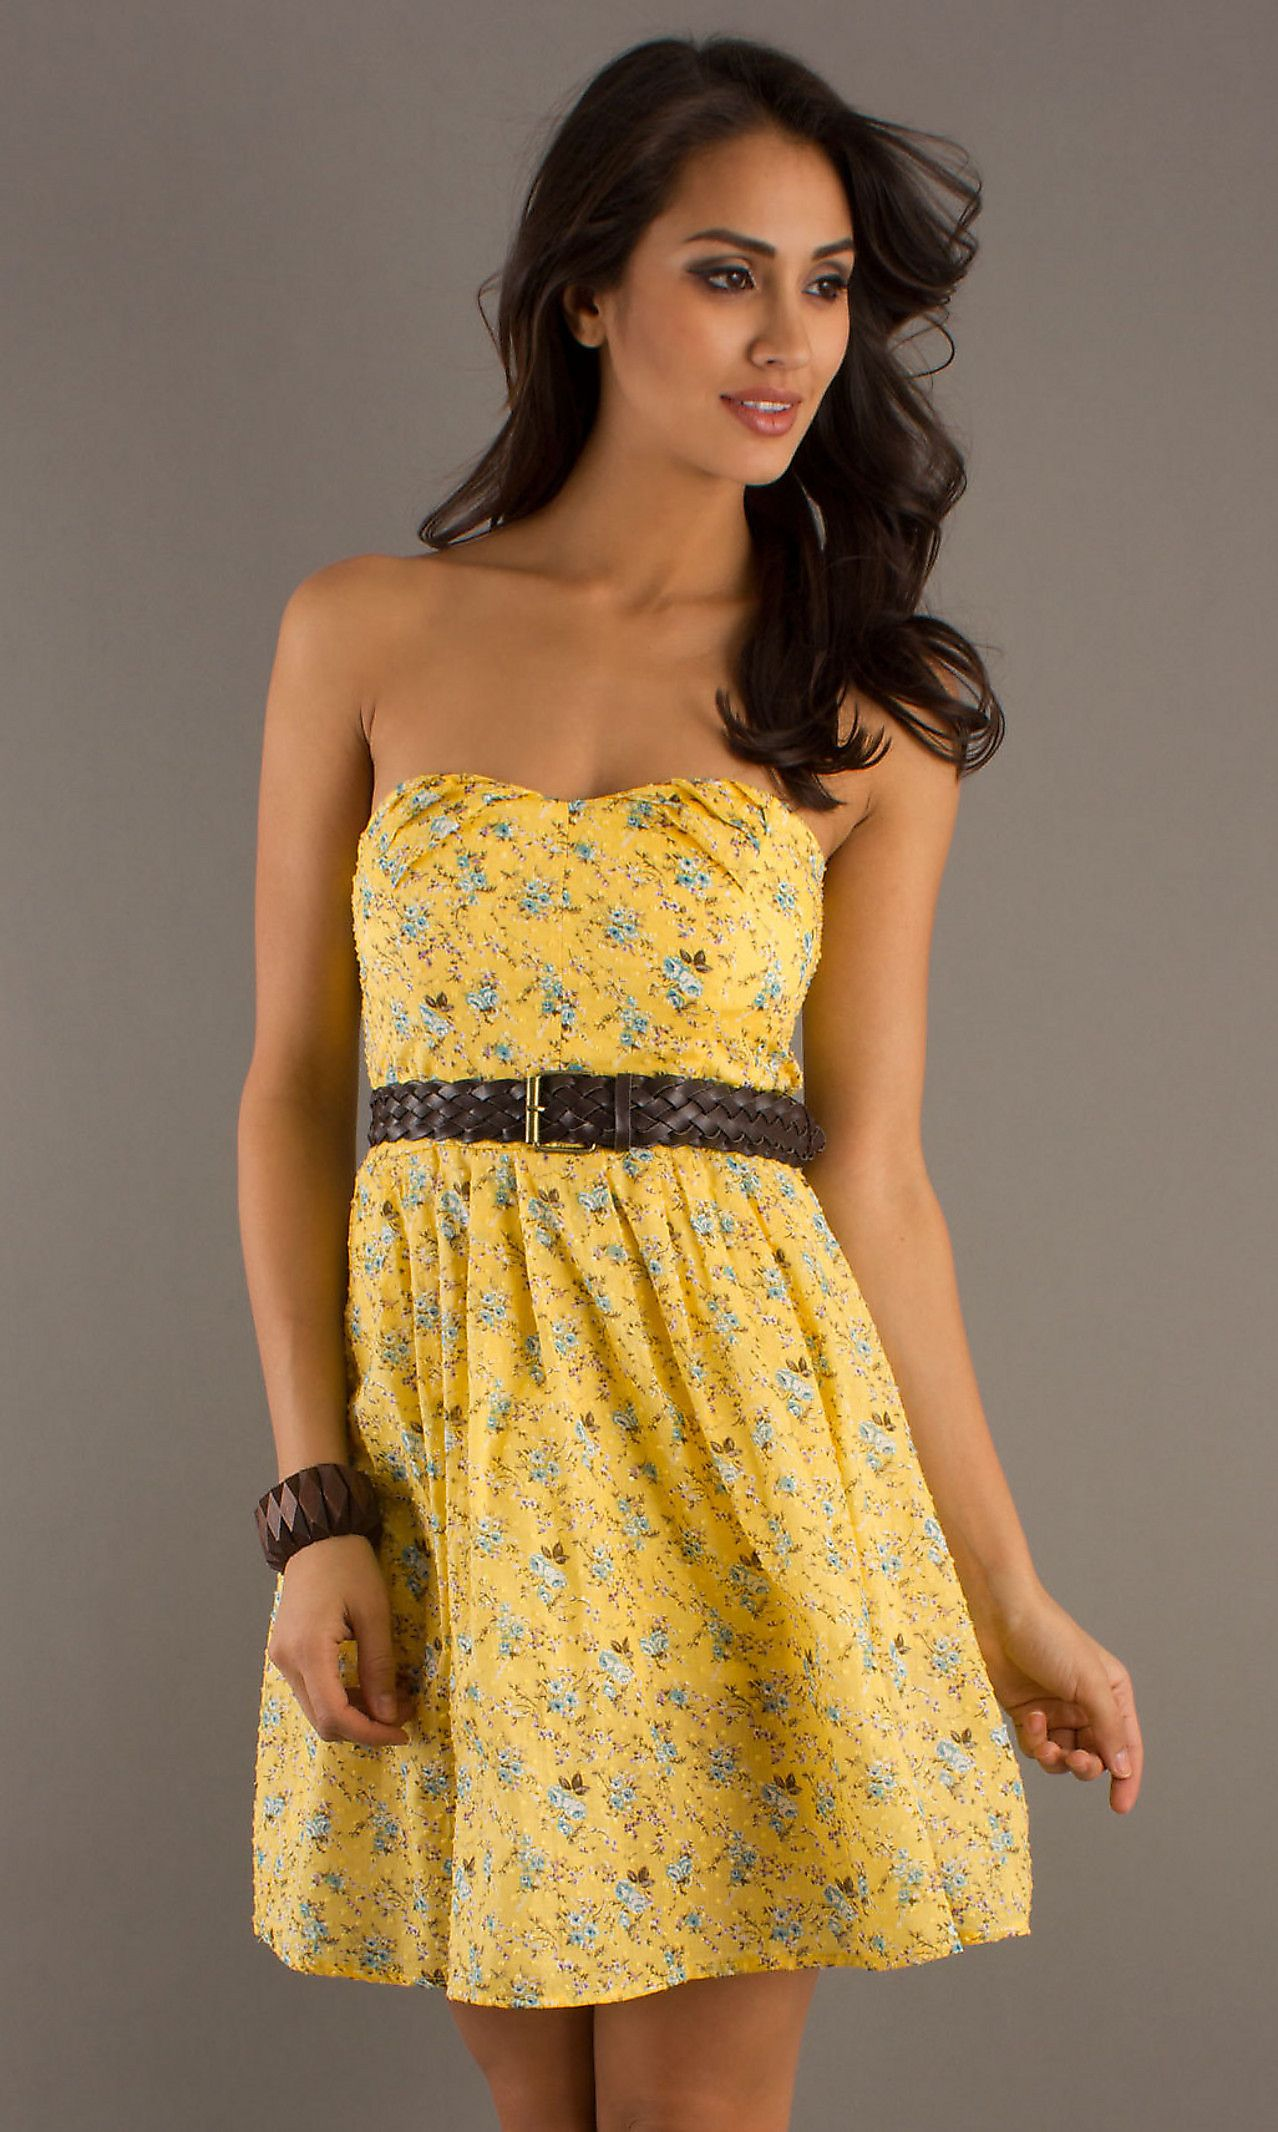 Short Strapless Yellow Summer Dress | Beautiful, Fashion ...